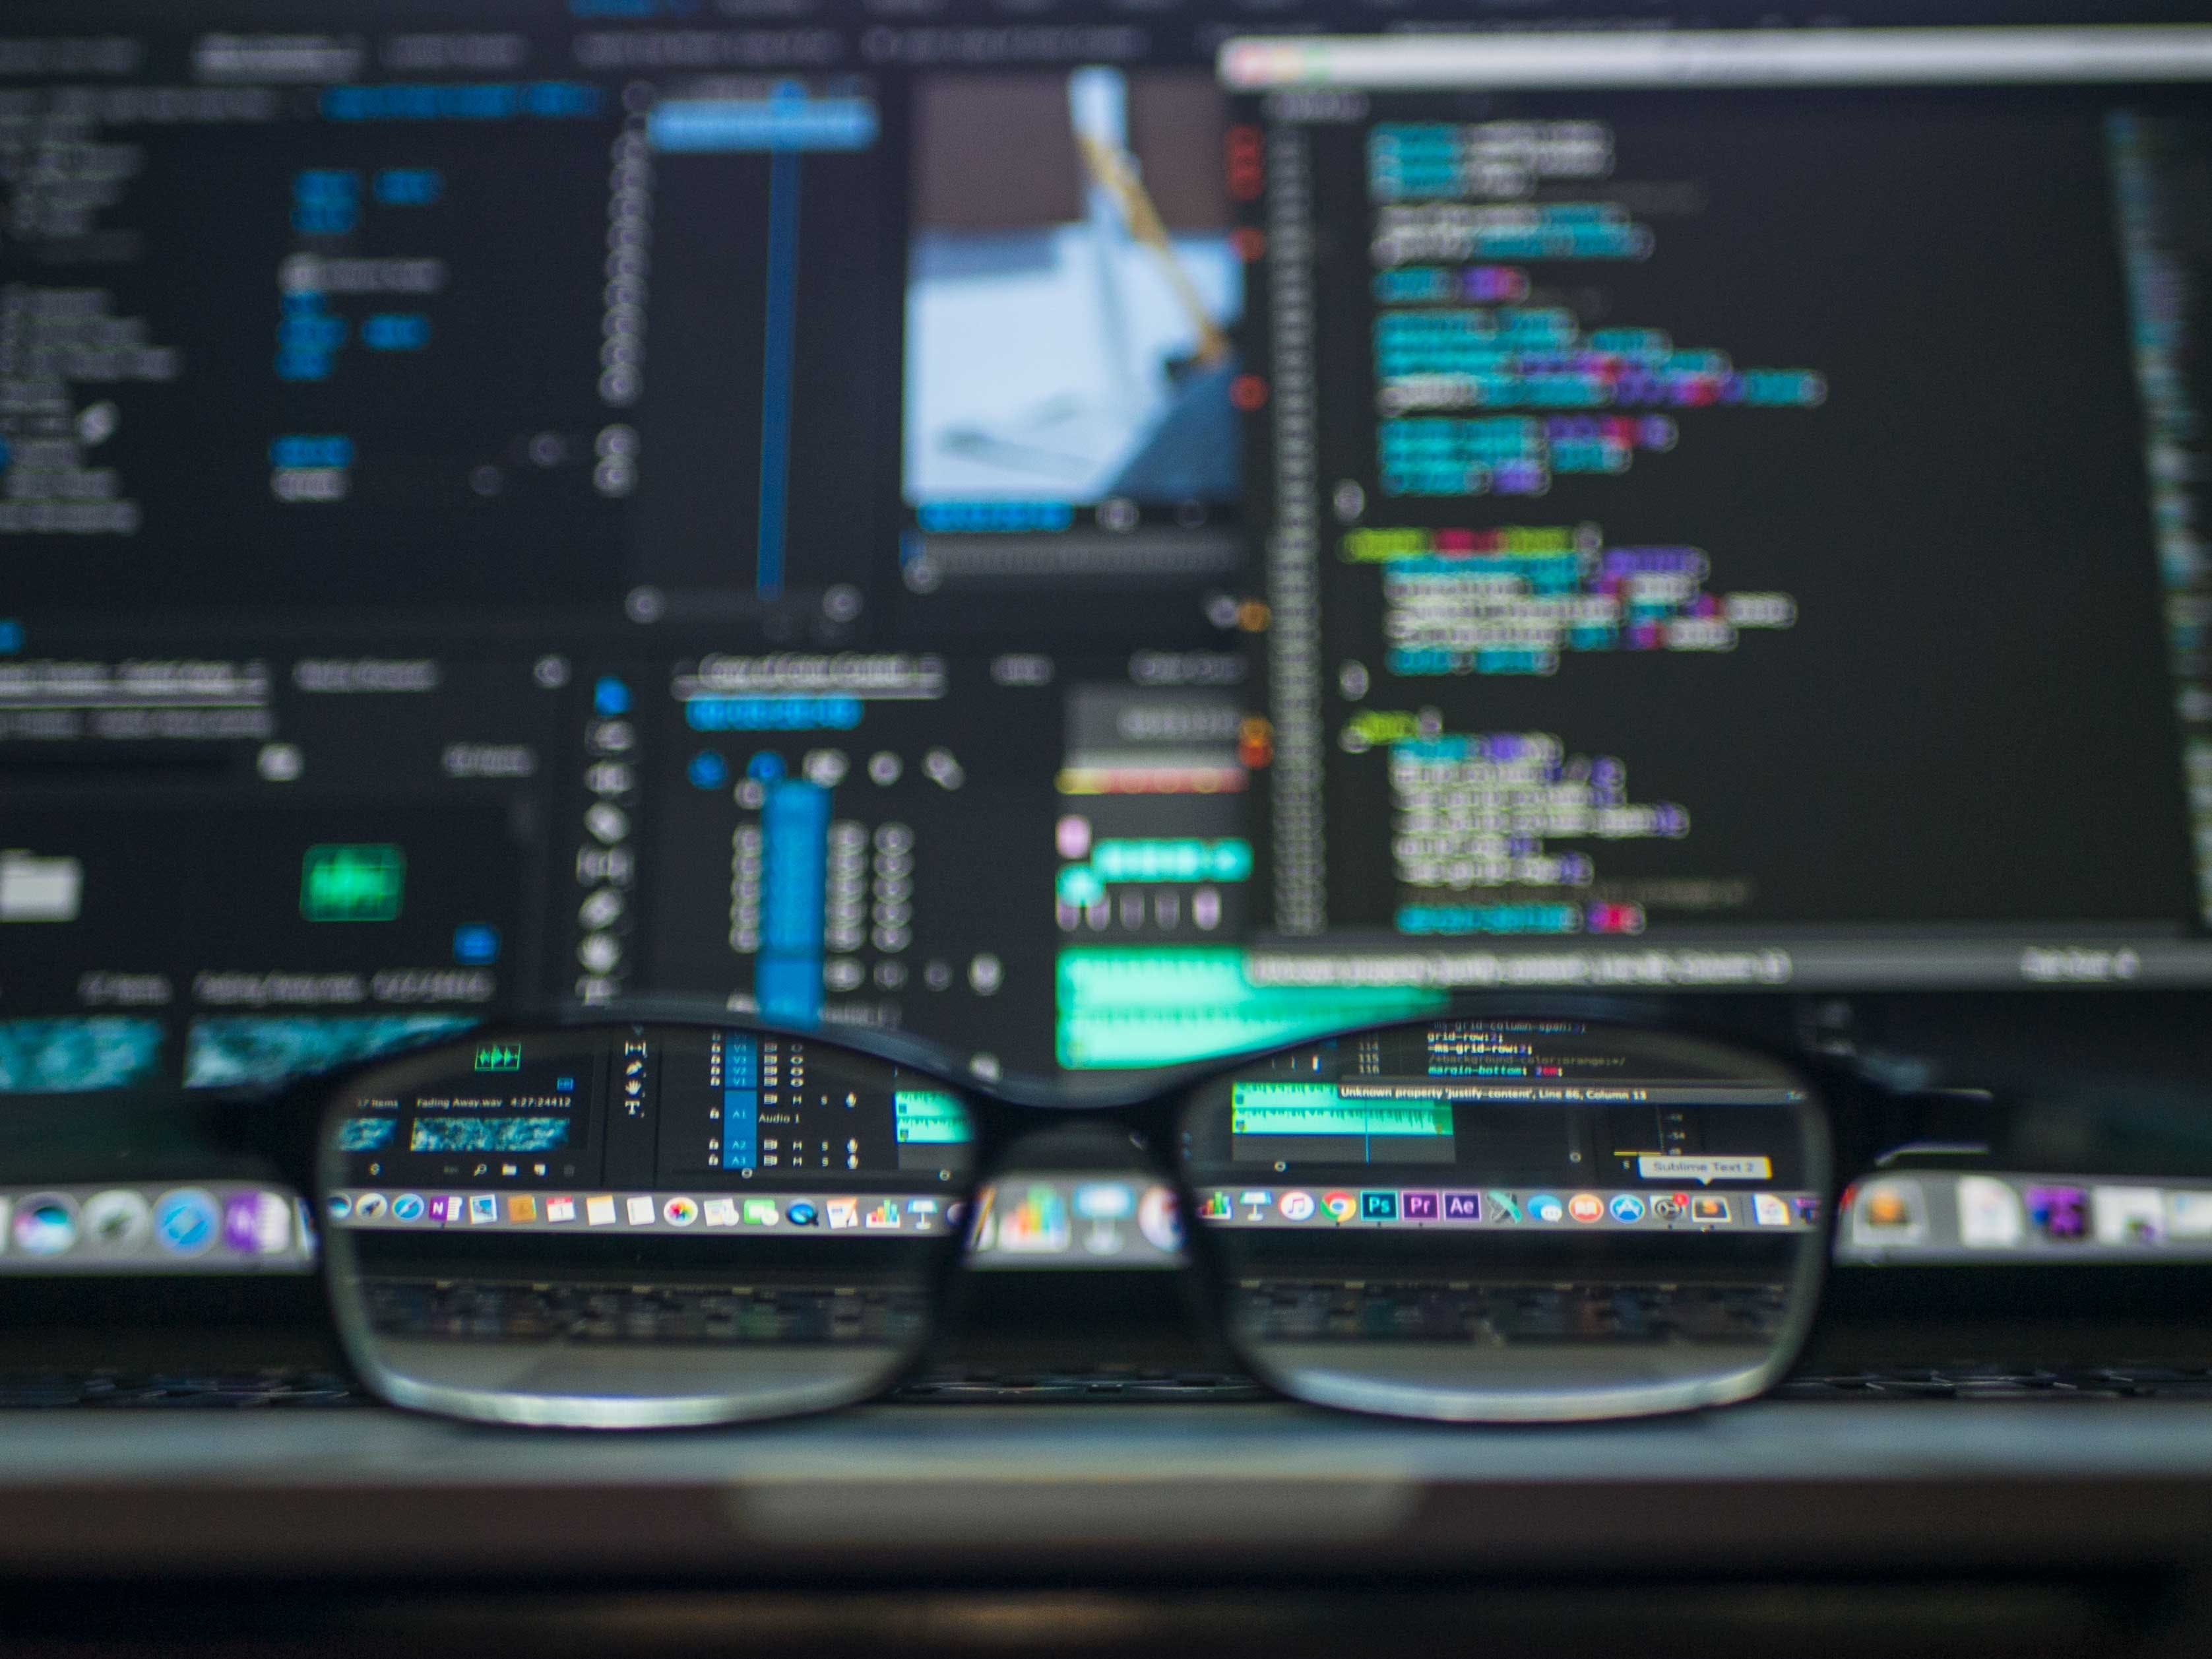 A blurry screen with computer code on it. Looking through the lens of a pair of glasses makes the code easy to read.